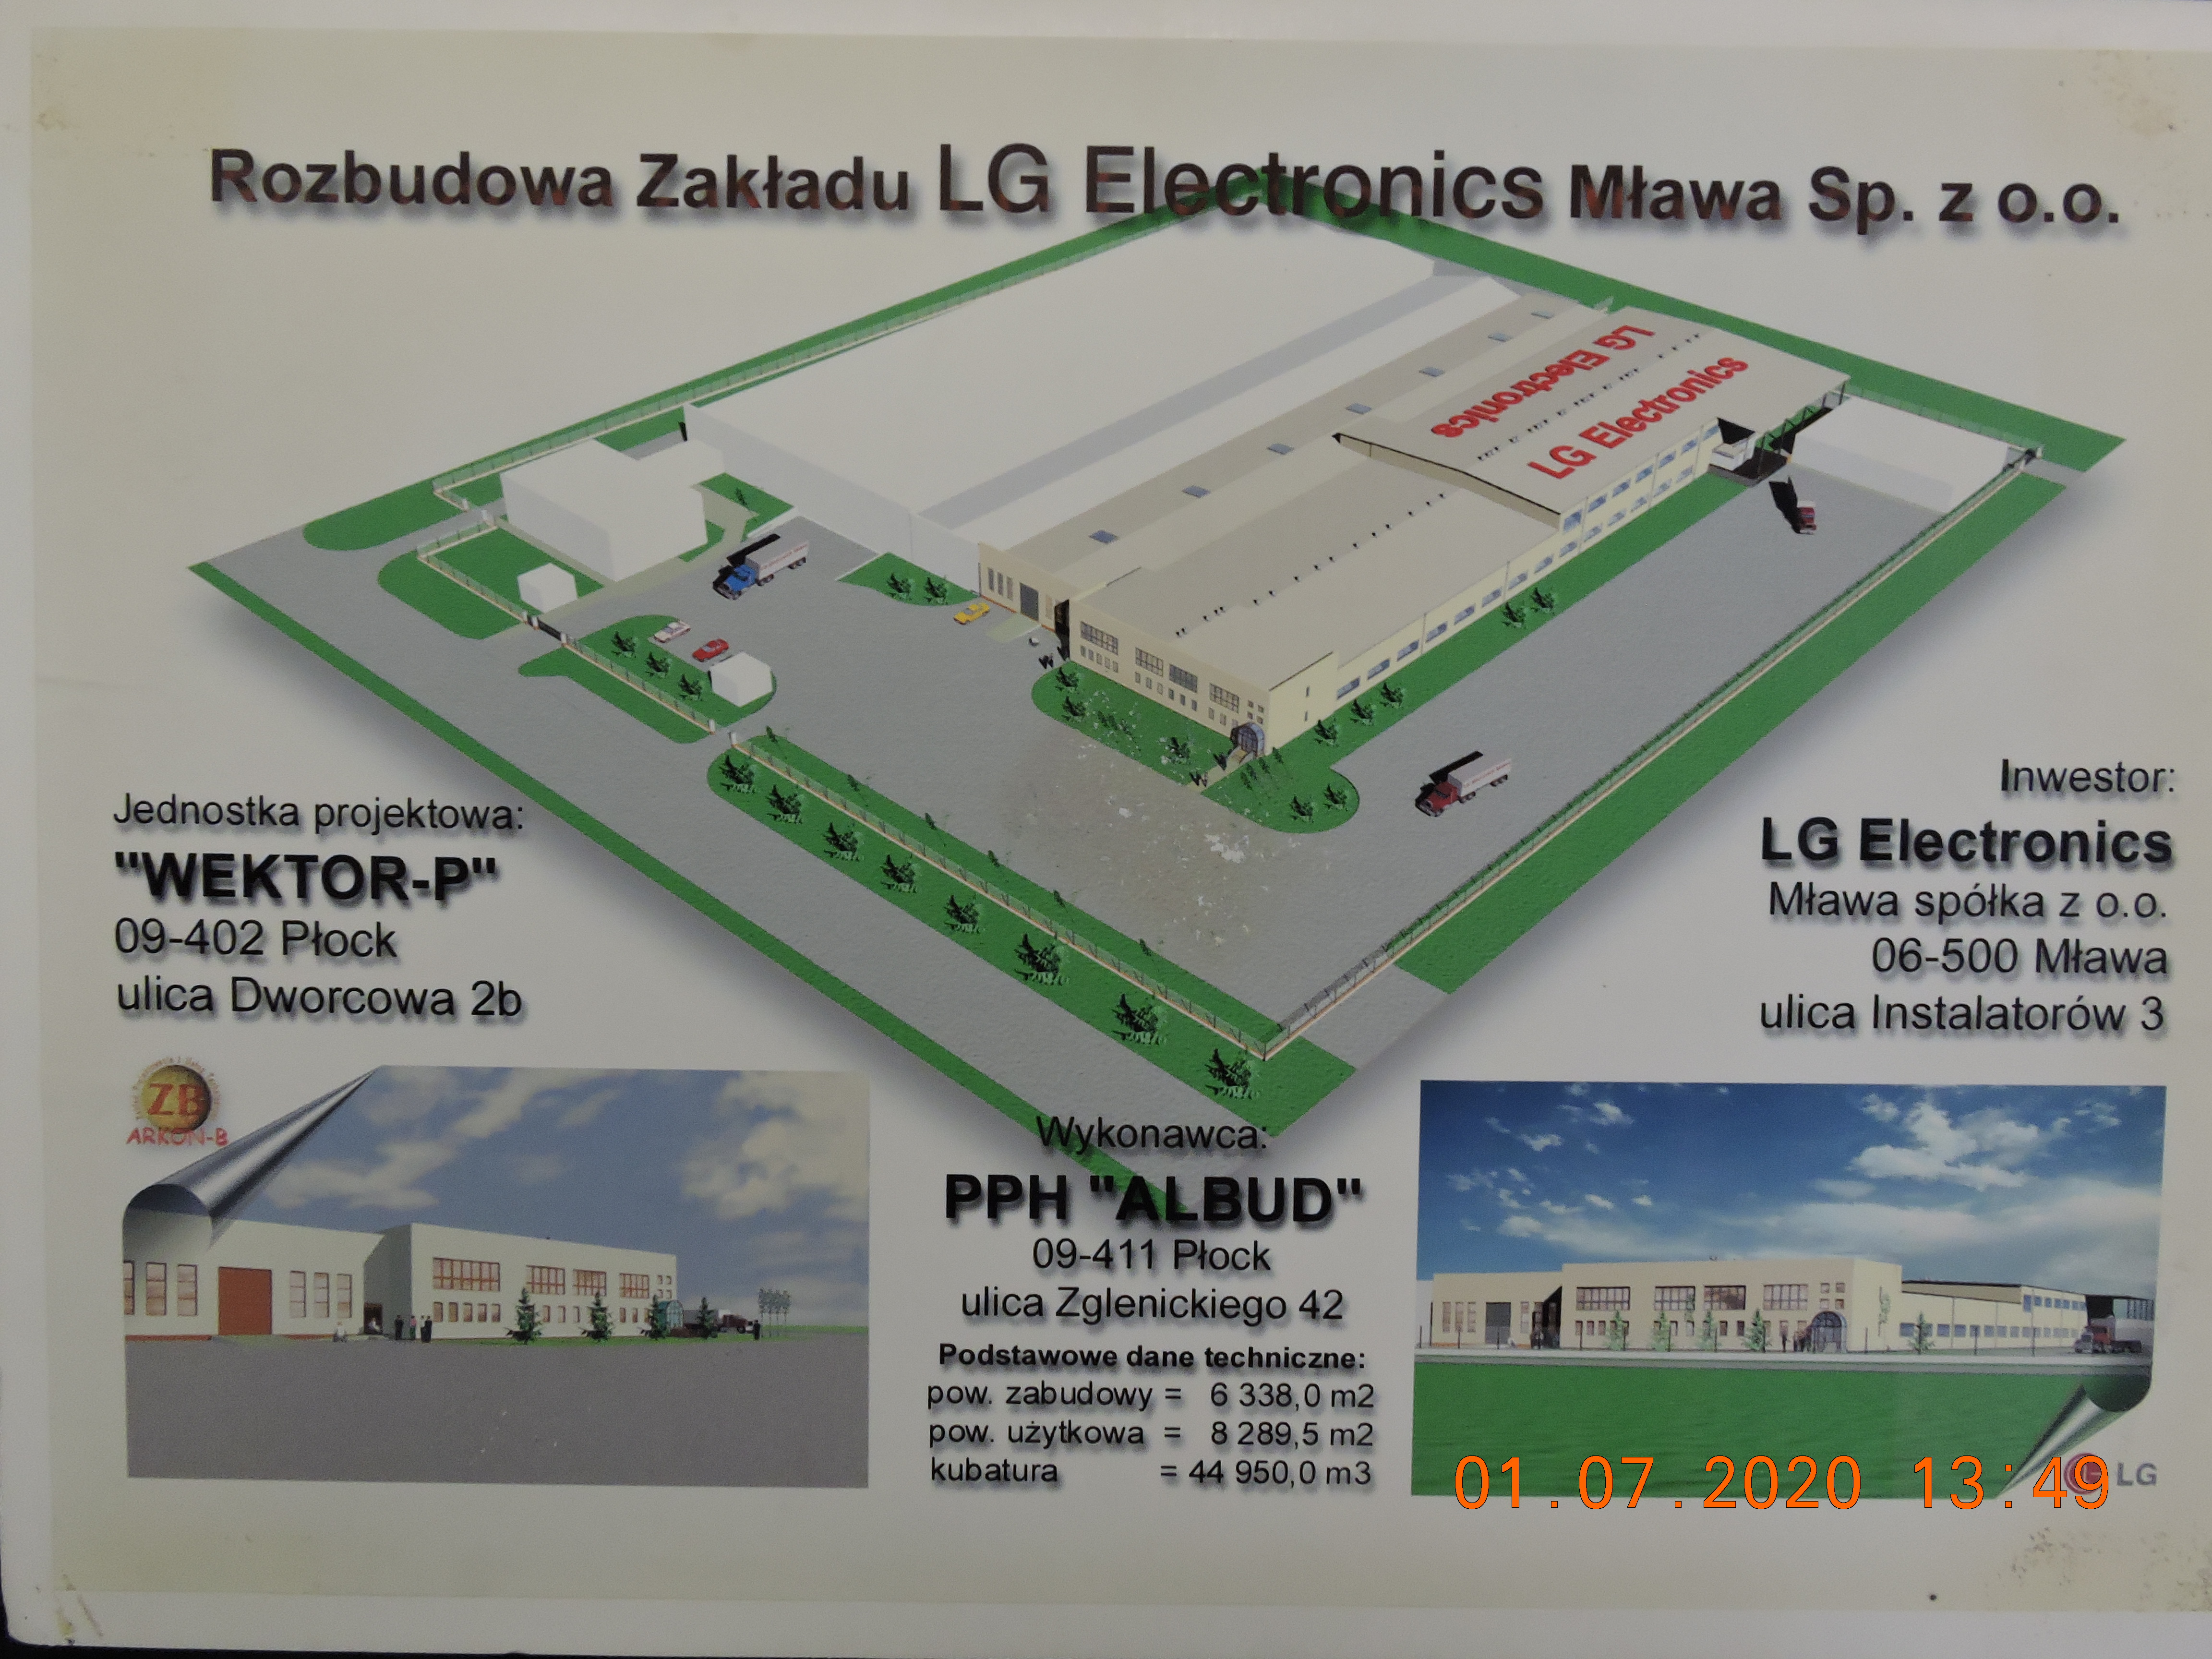 MULTI-BRANCH DESIGN OF A DOUBLE-AREA PRODUCTION HALL WITH A SOCIAL AND OFFICE BACKGROUND FOR LG ELECTRONICS MŁAWA SP. Z O.O. 126 X (30 + 20) M. (KOREA)